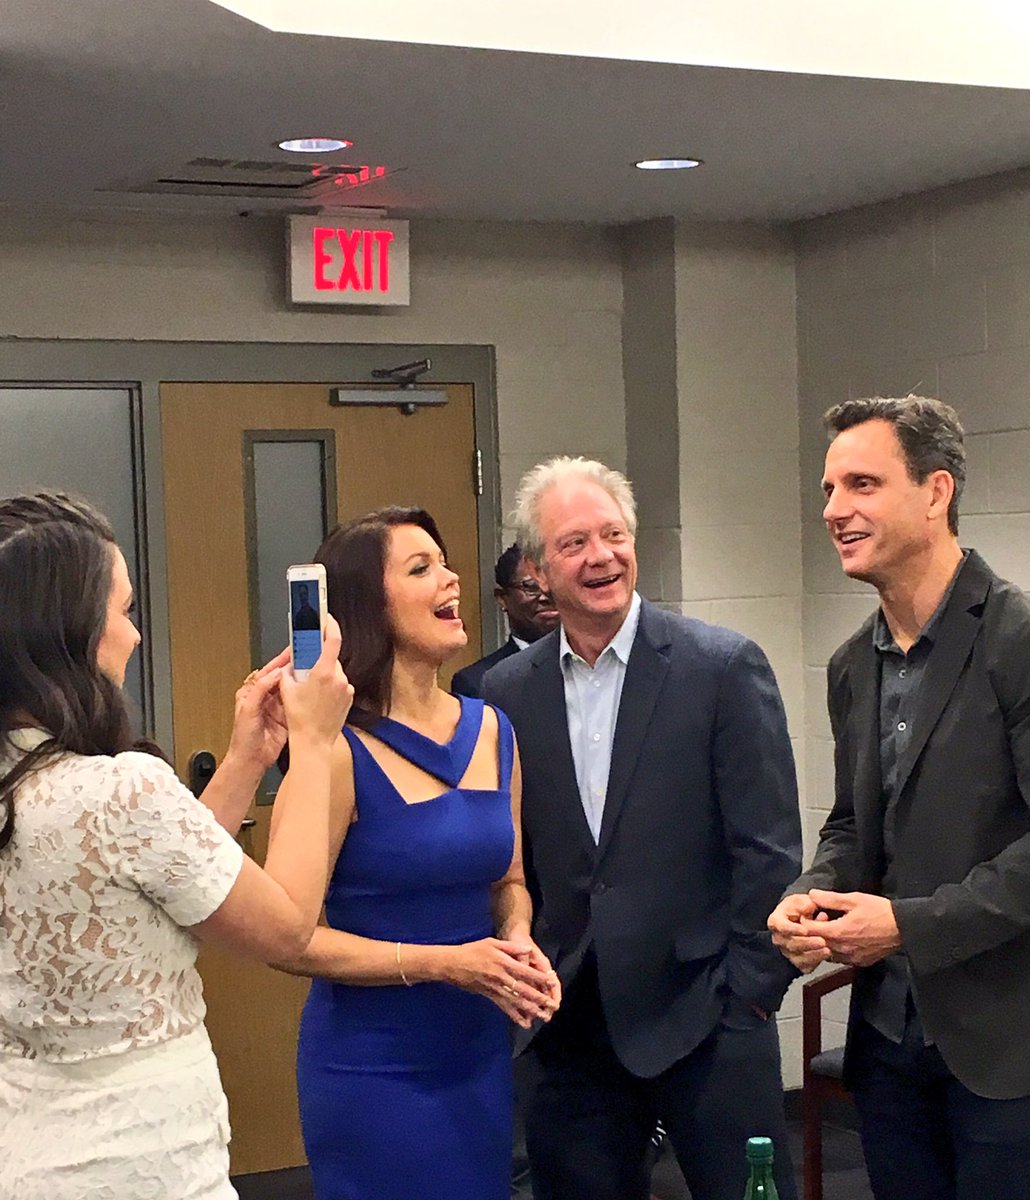 In case you aren't aware, @KatieQLowes is the queen of social media. @tonygoldwyn says so. #SCANDALatSI https://t.co/KdCXxCwzCt